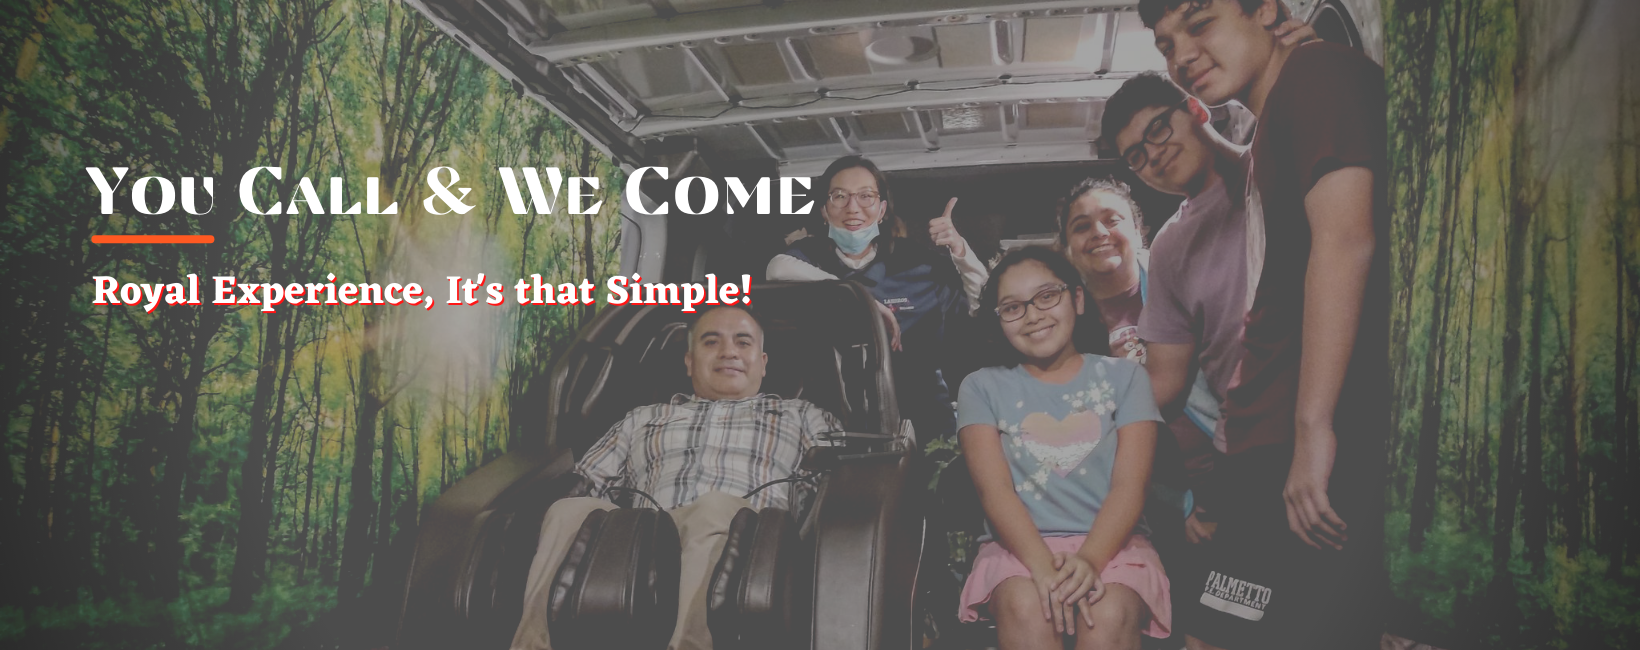 Today, My family and I, We very excited to announce our latest project ever here in Florida!!! We are the FIRST and the ONLY ONE massage chair company offering massage chair demonstration at your preferred location!